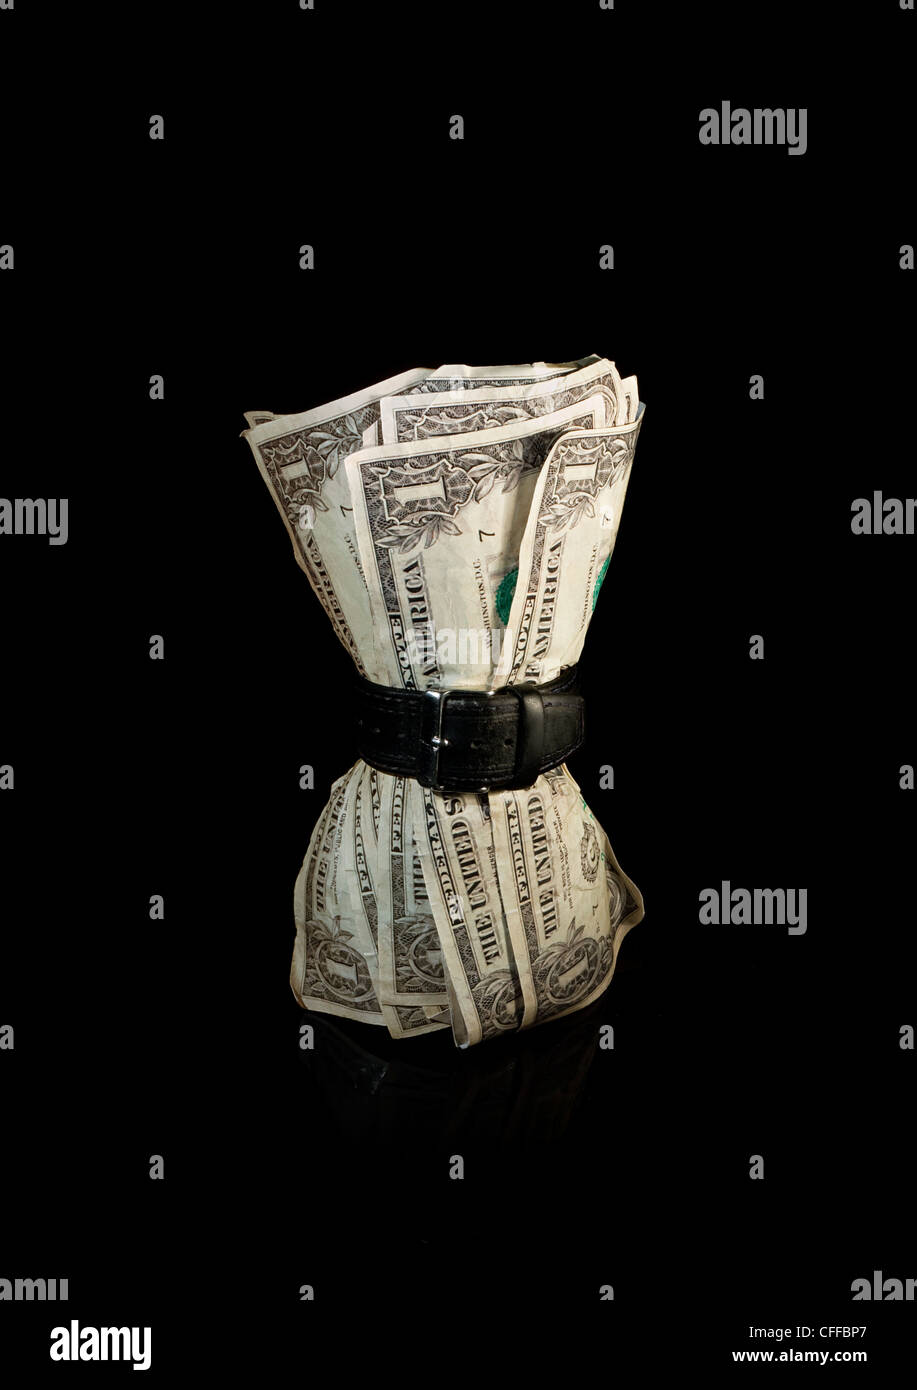 Dollar bills squeezed by belt symbolizing a tight economy - Stock Image